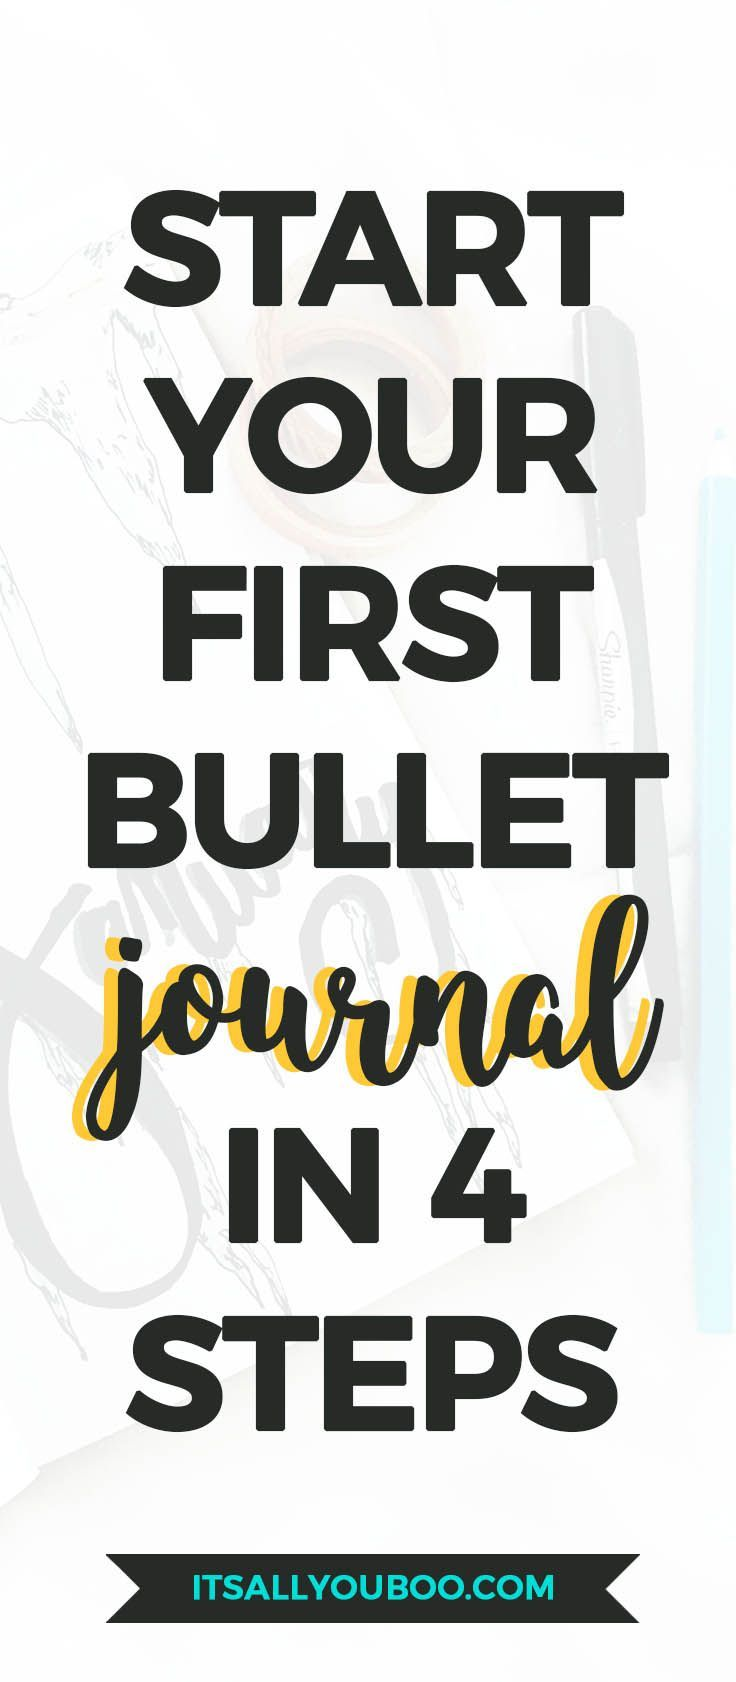 Want to know how to start a bullet journal? Need inspiration for your bullet journal layout and setup? Click here for your beginner's guide to bullet journaling, with ideas for pages, pens, journals and more. #bulletjournal #bulletjournaling #bulletjournaljunkies #bulletjournalcommunity #bulletjournallove #planning #planningahead #planningtime #journaladdict #journaling #journal #journallove